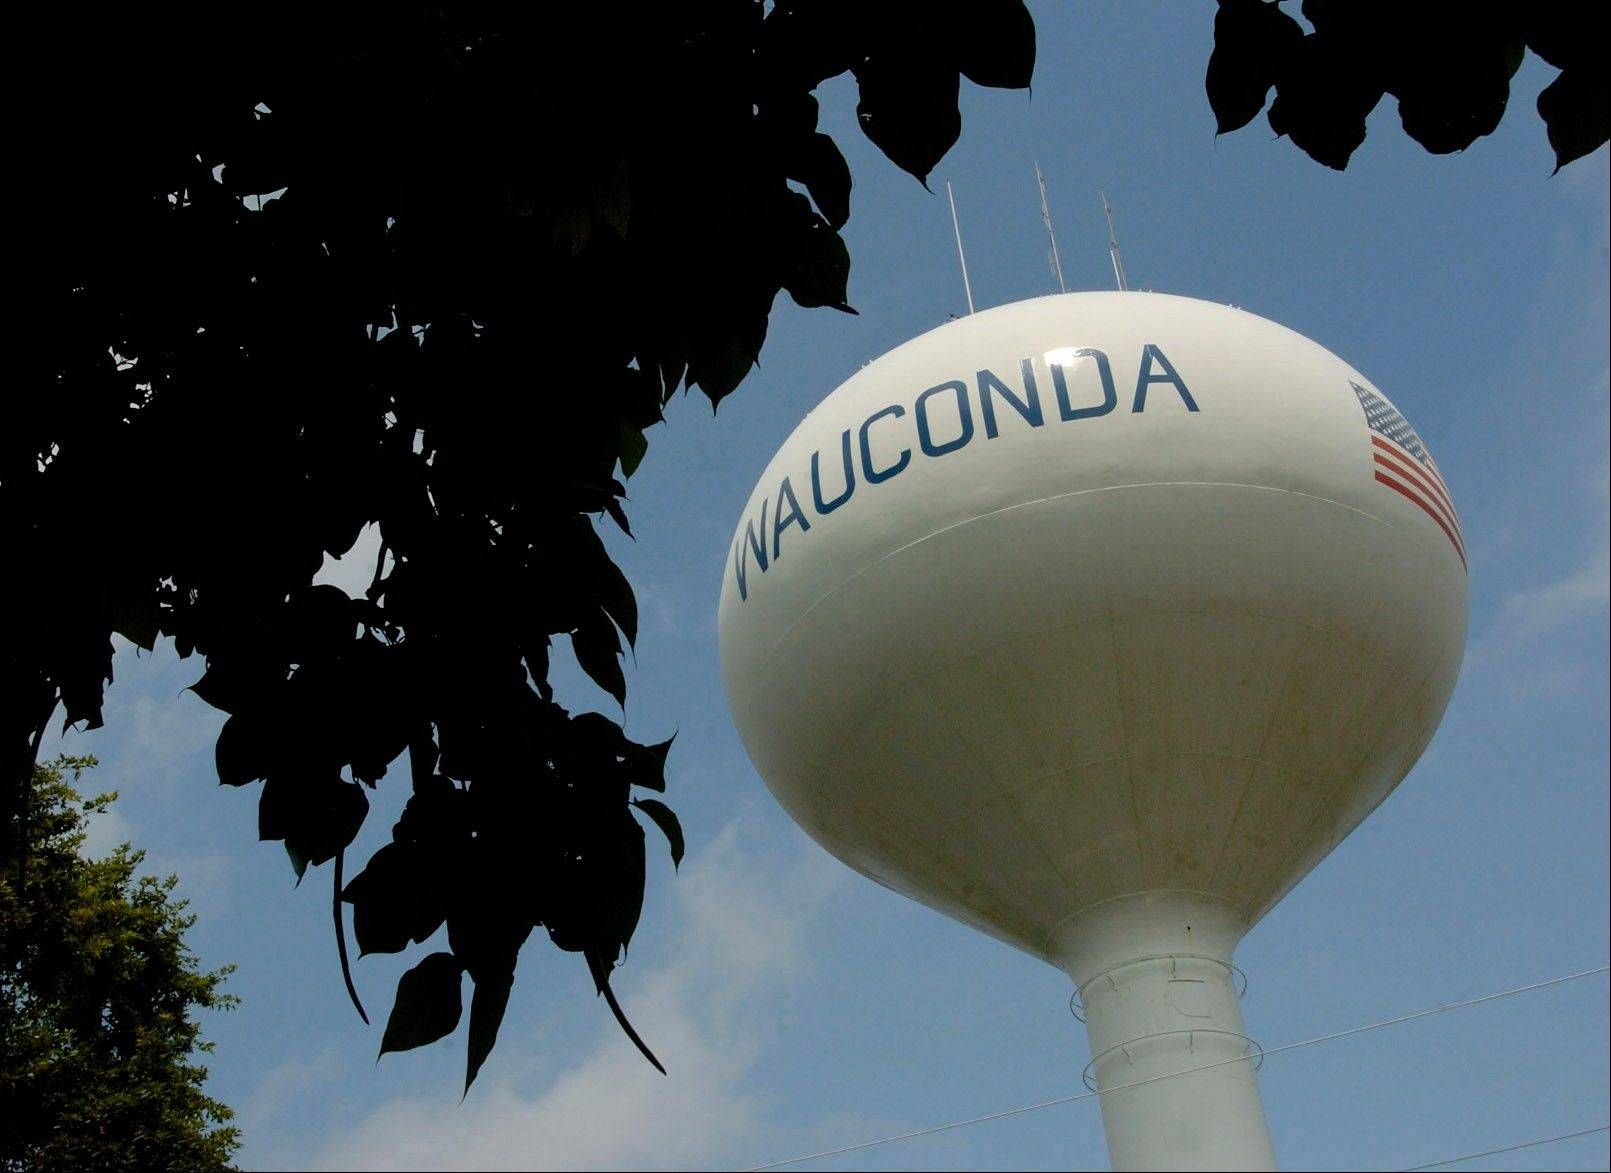 The first phase of Wauconda's long-awaited Lake Michigan water project is expected to begin in spring 2014.